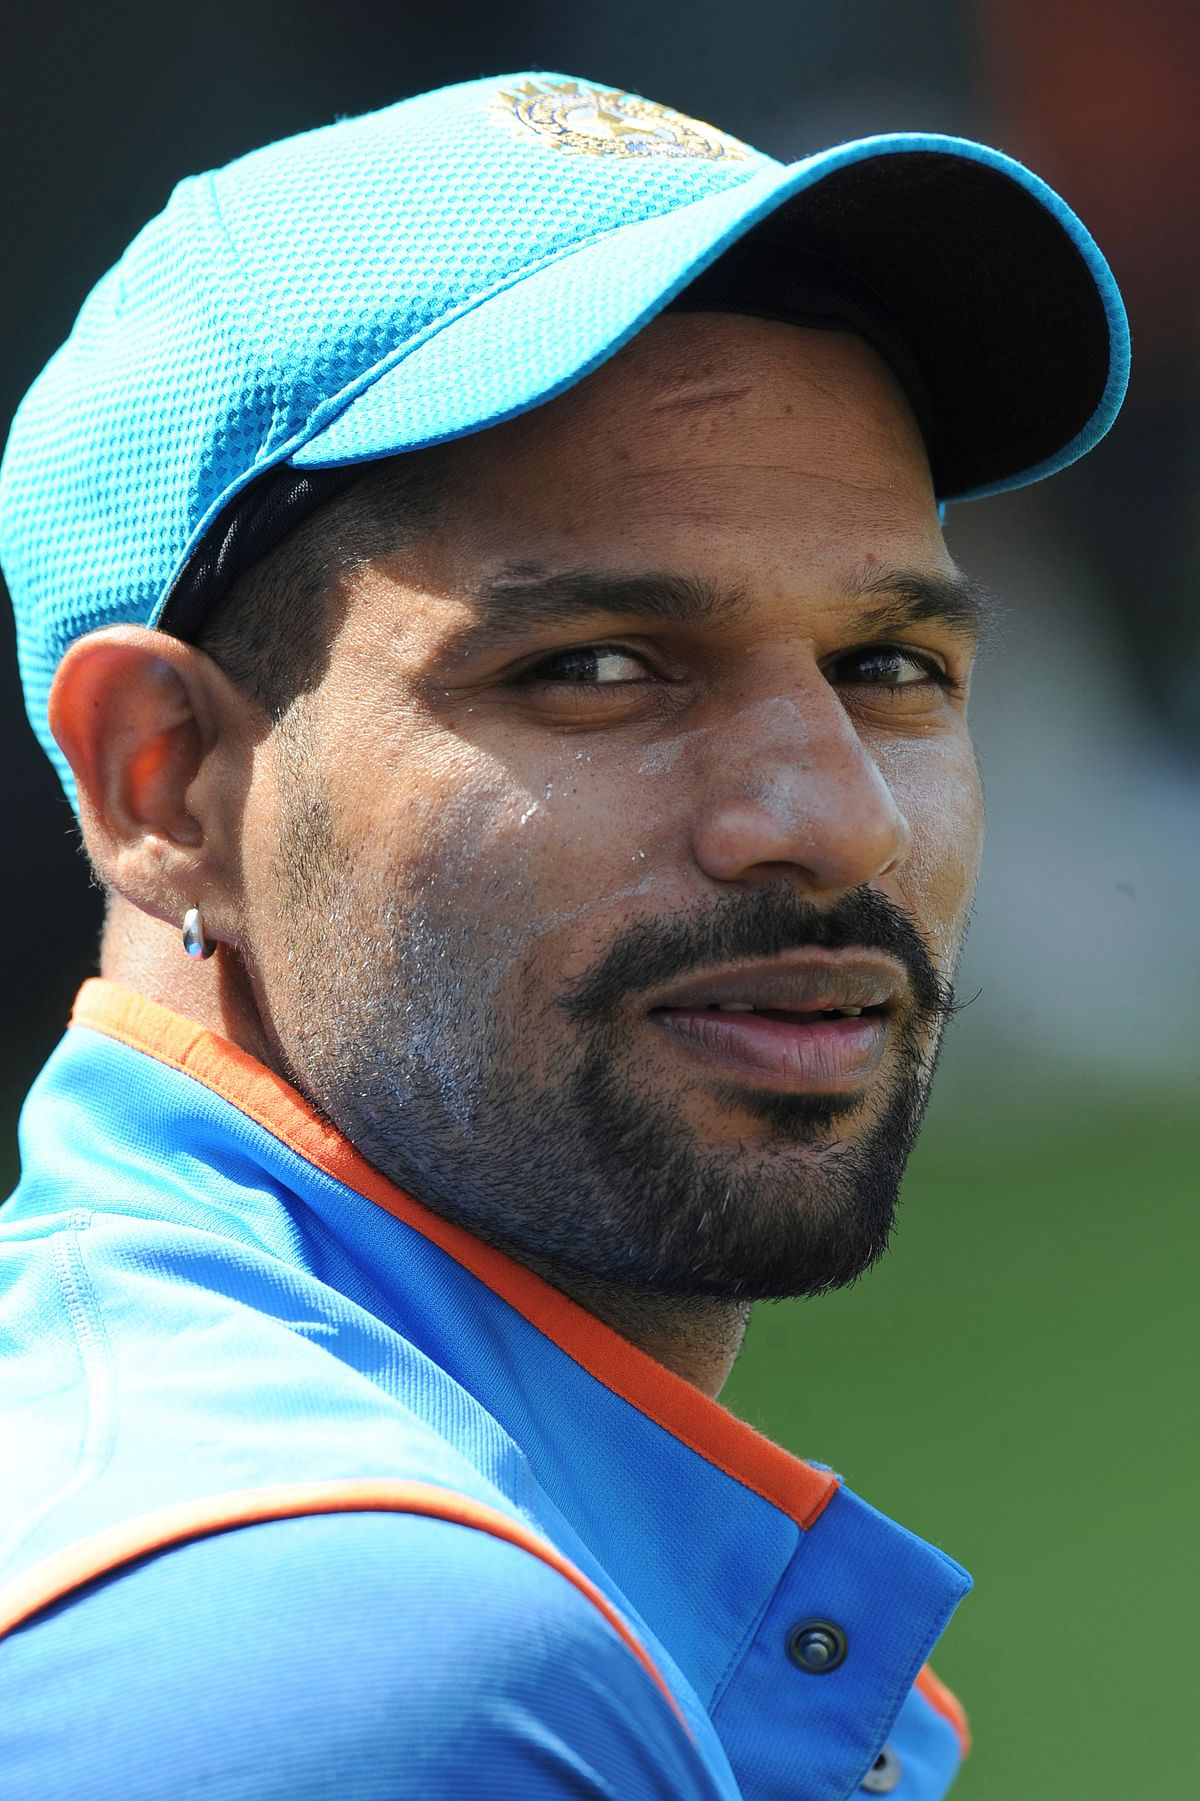 Shikhar Dhawan attends a practice session in the nets ahead of their ICC Champions Trophy Group B match against Pakistan. (Photo: AP)